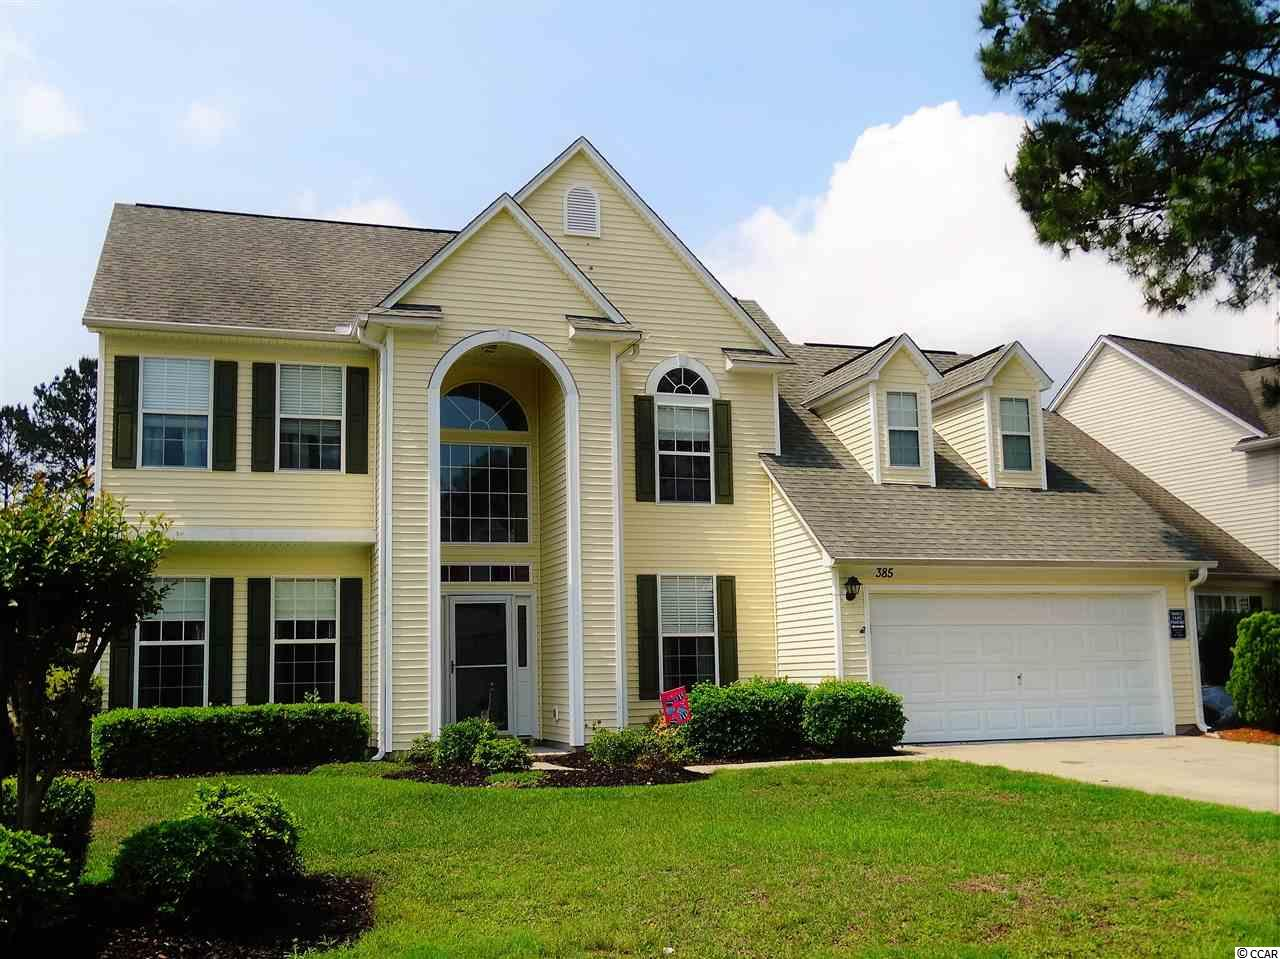 385 Blackberry Lane, Myrtle Beach, SC 29579